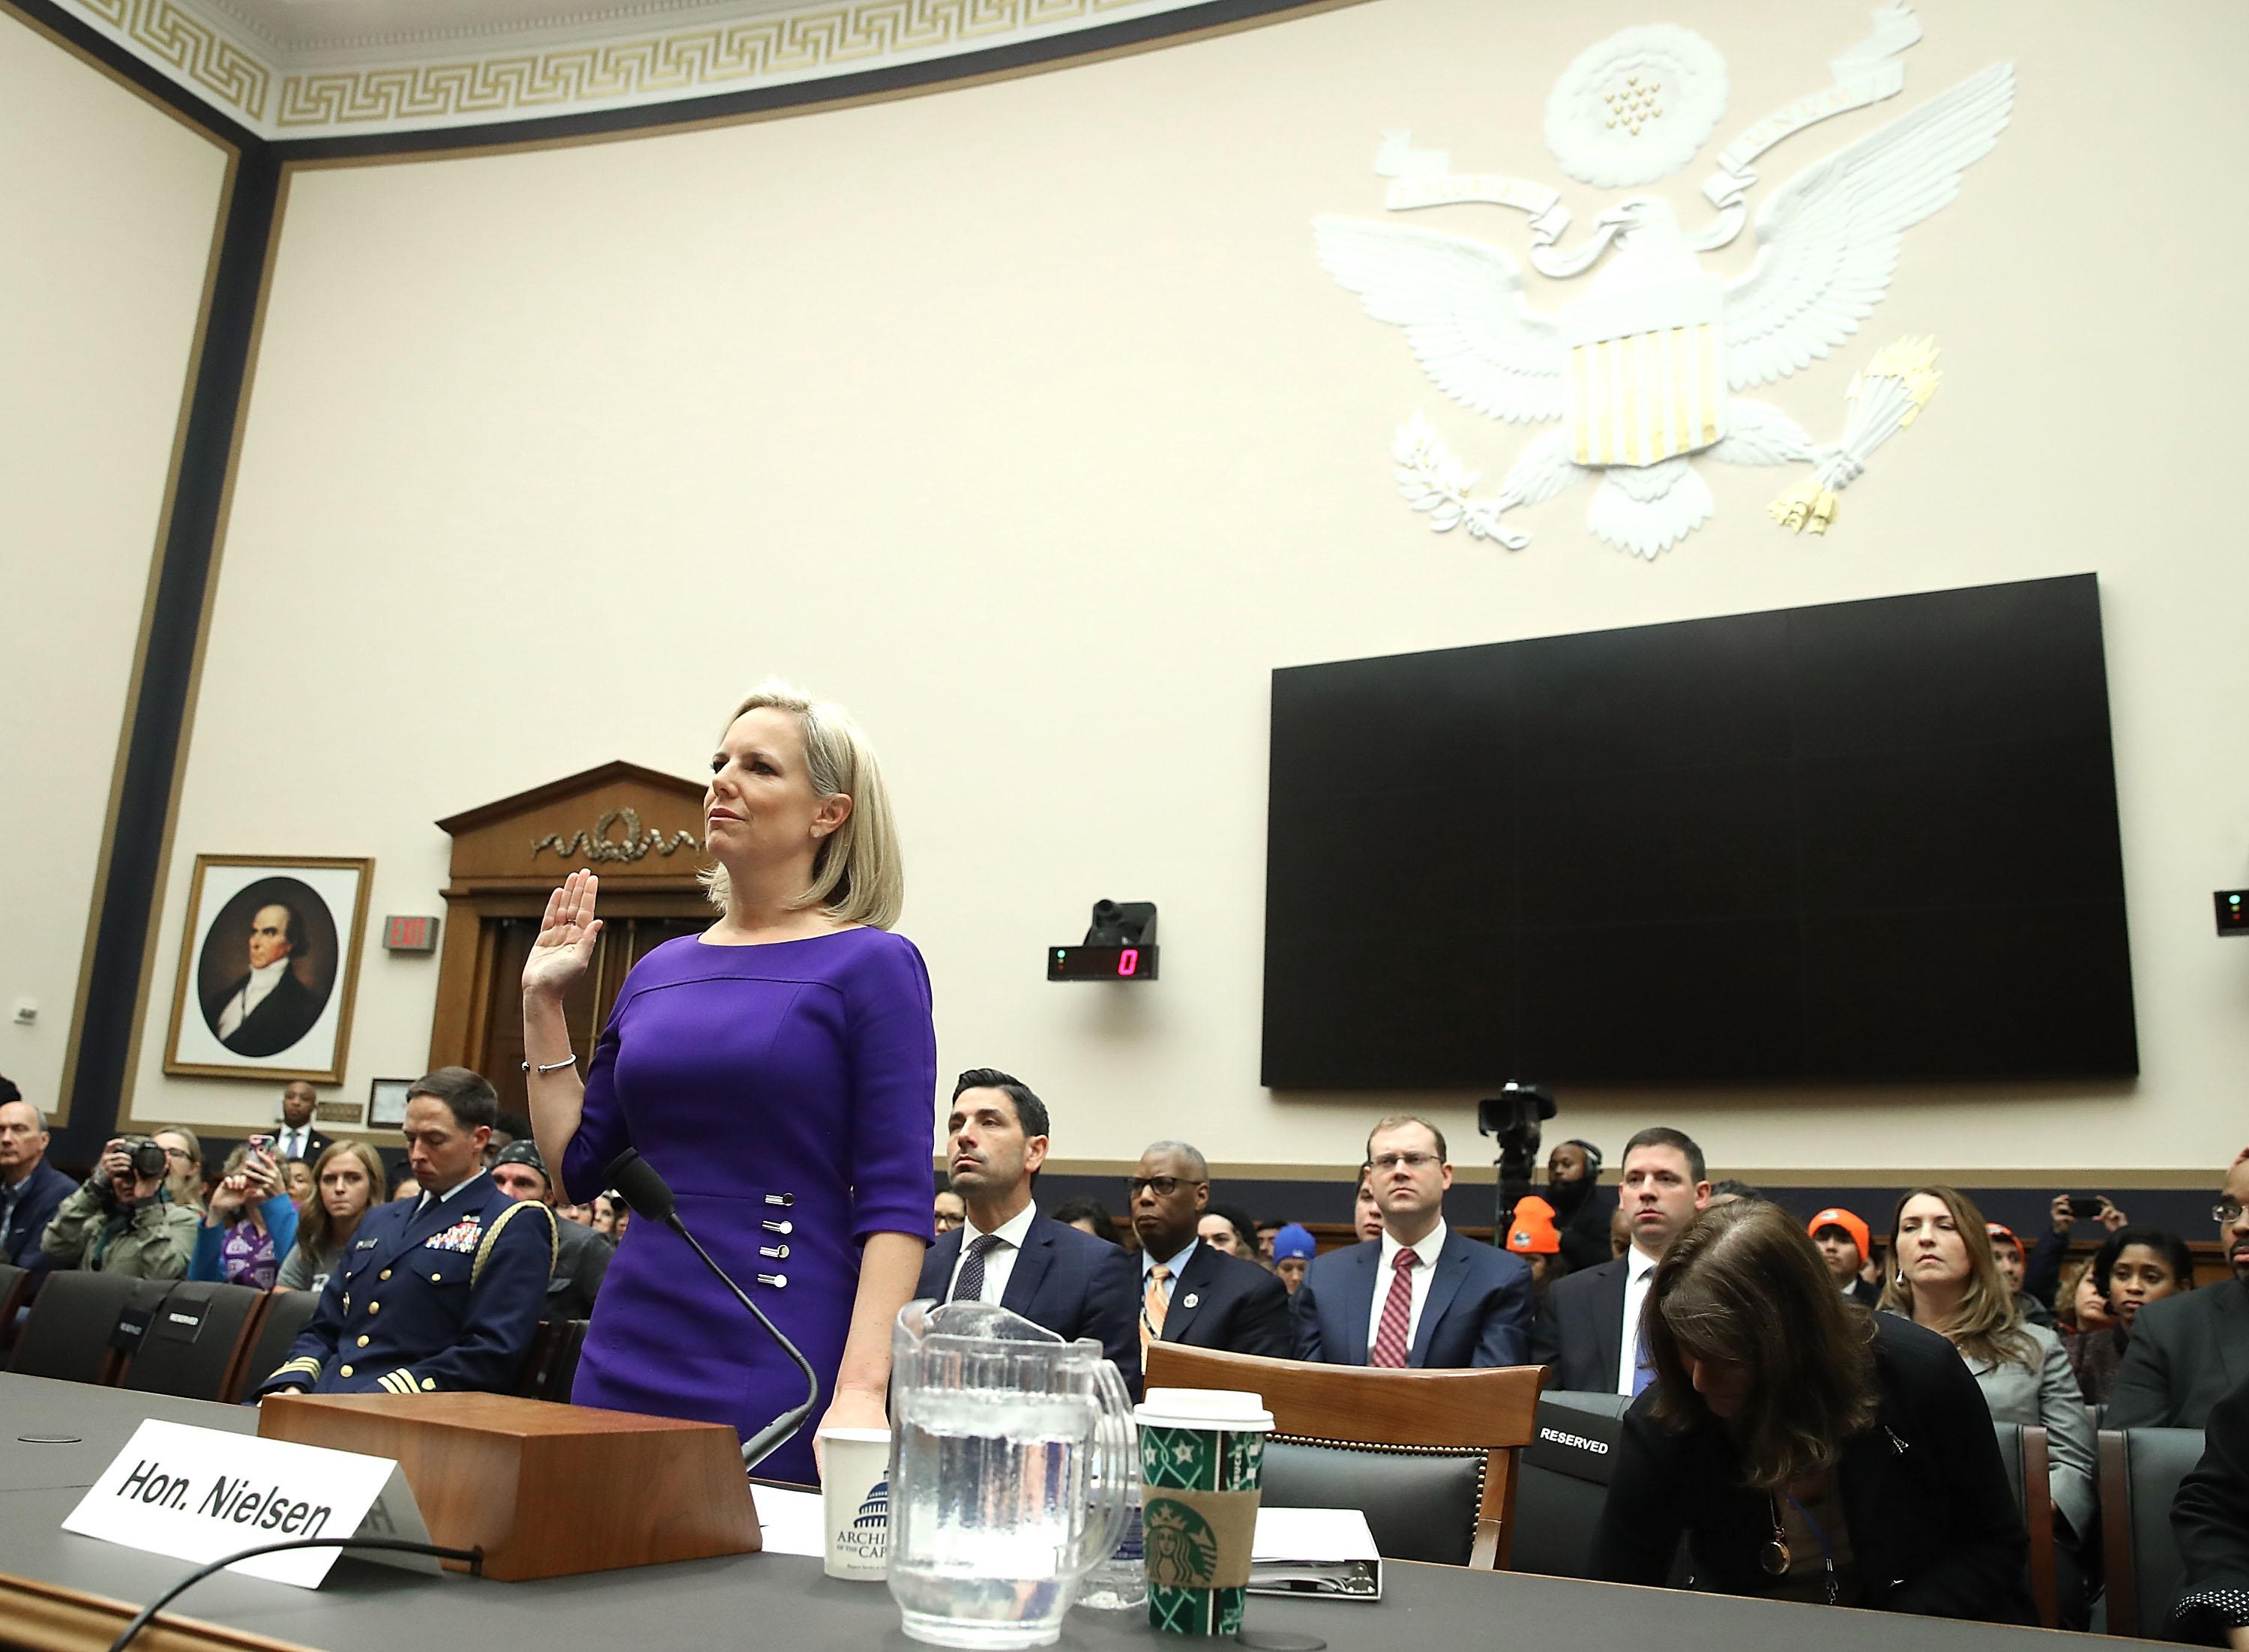 Homeland Security Secretary Kirstjen Nielsen is sworn in before testifying to the House Judiciary Committee, on Capitol Hill December 20, 2018 in Washington, D.C.